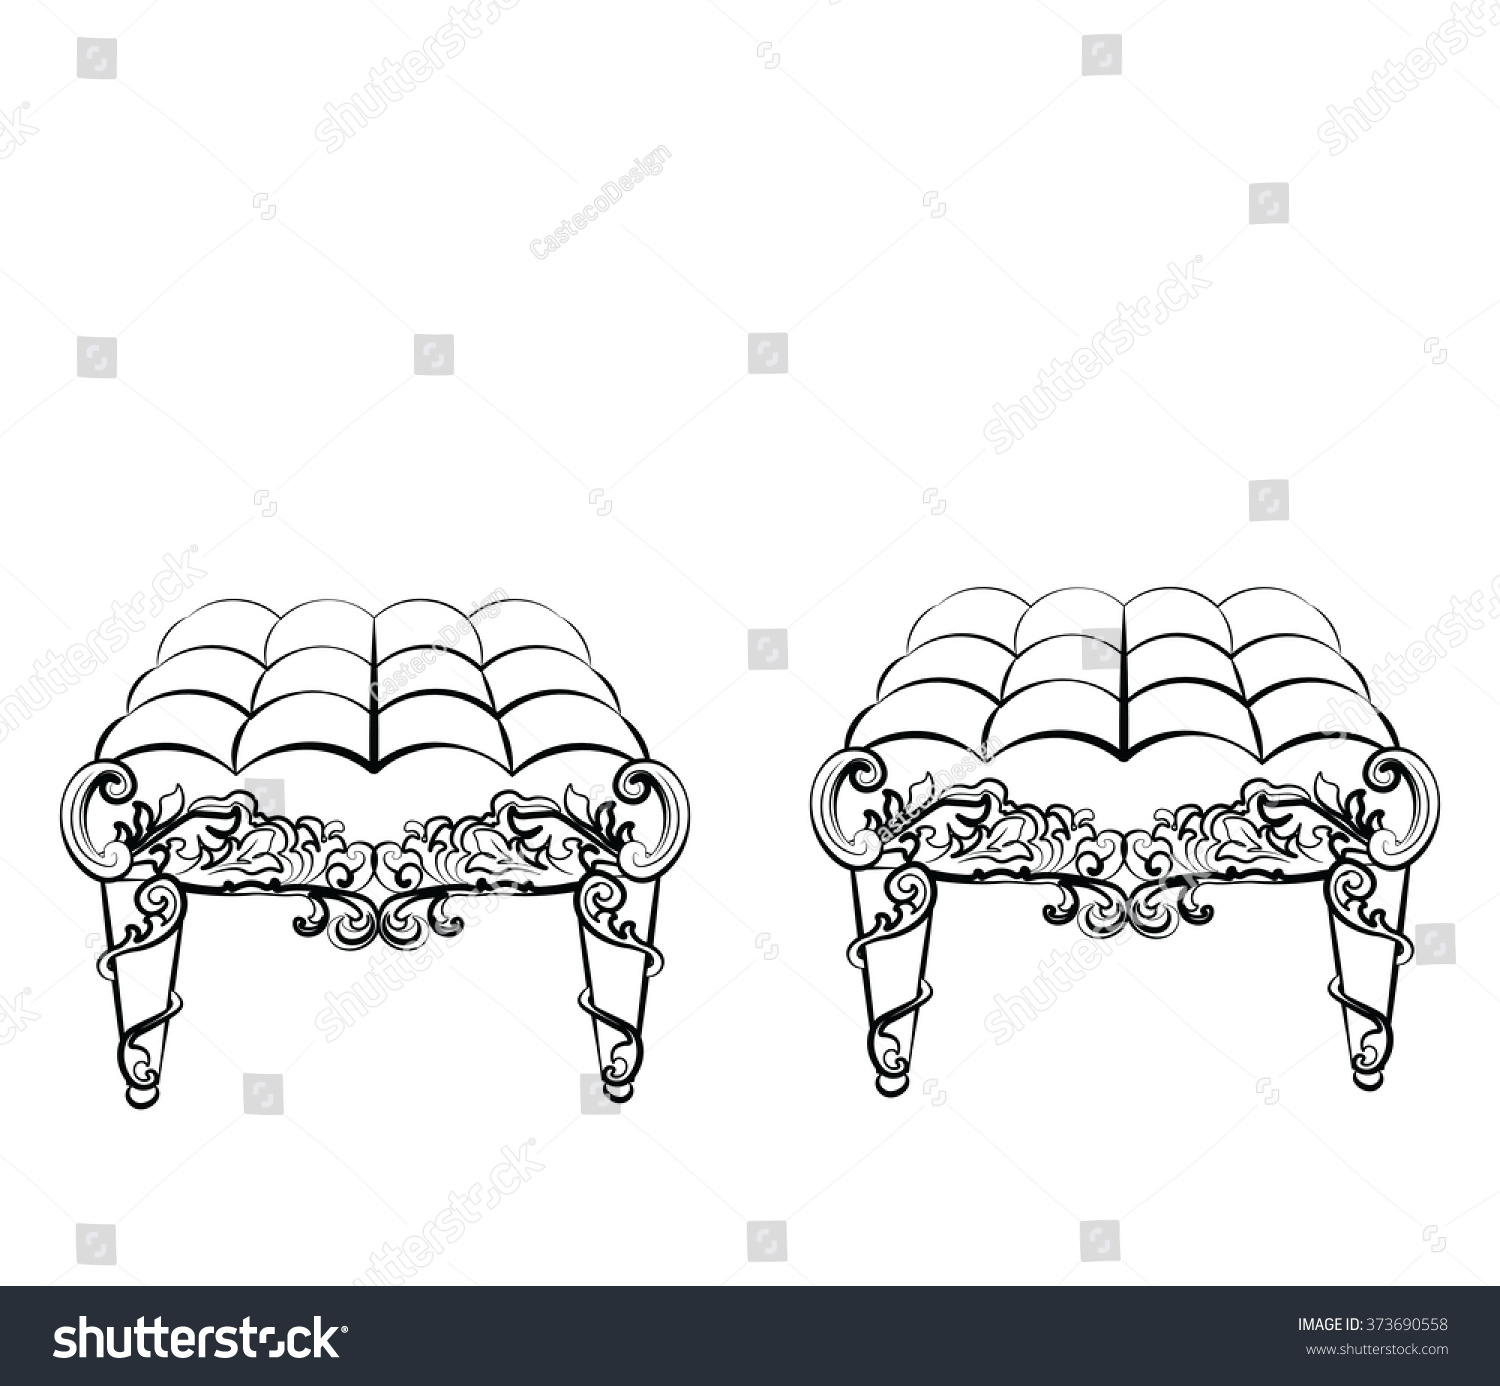 Rococo furniture sketch - Chair Furniture In Classic Rococo Style Ornament Vector Sketch